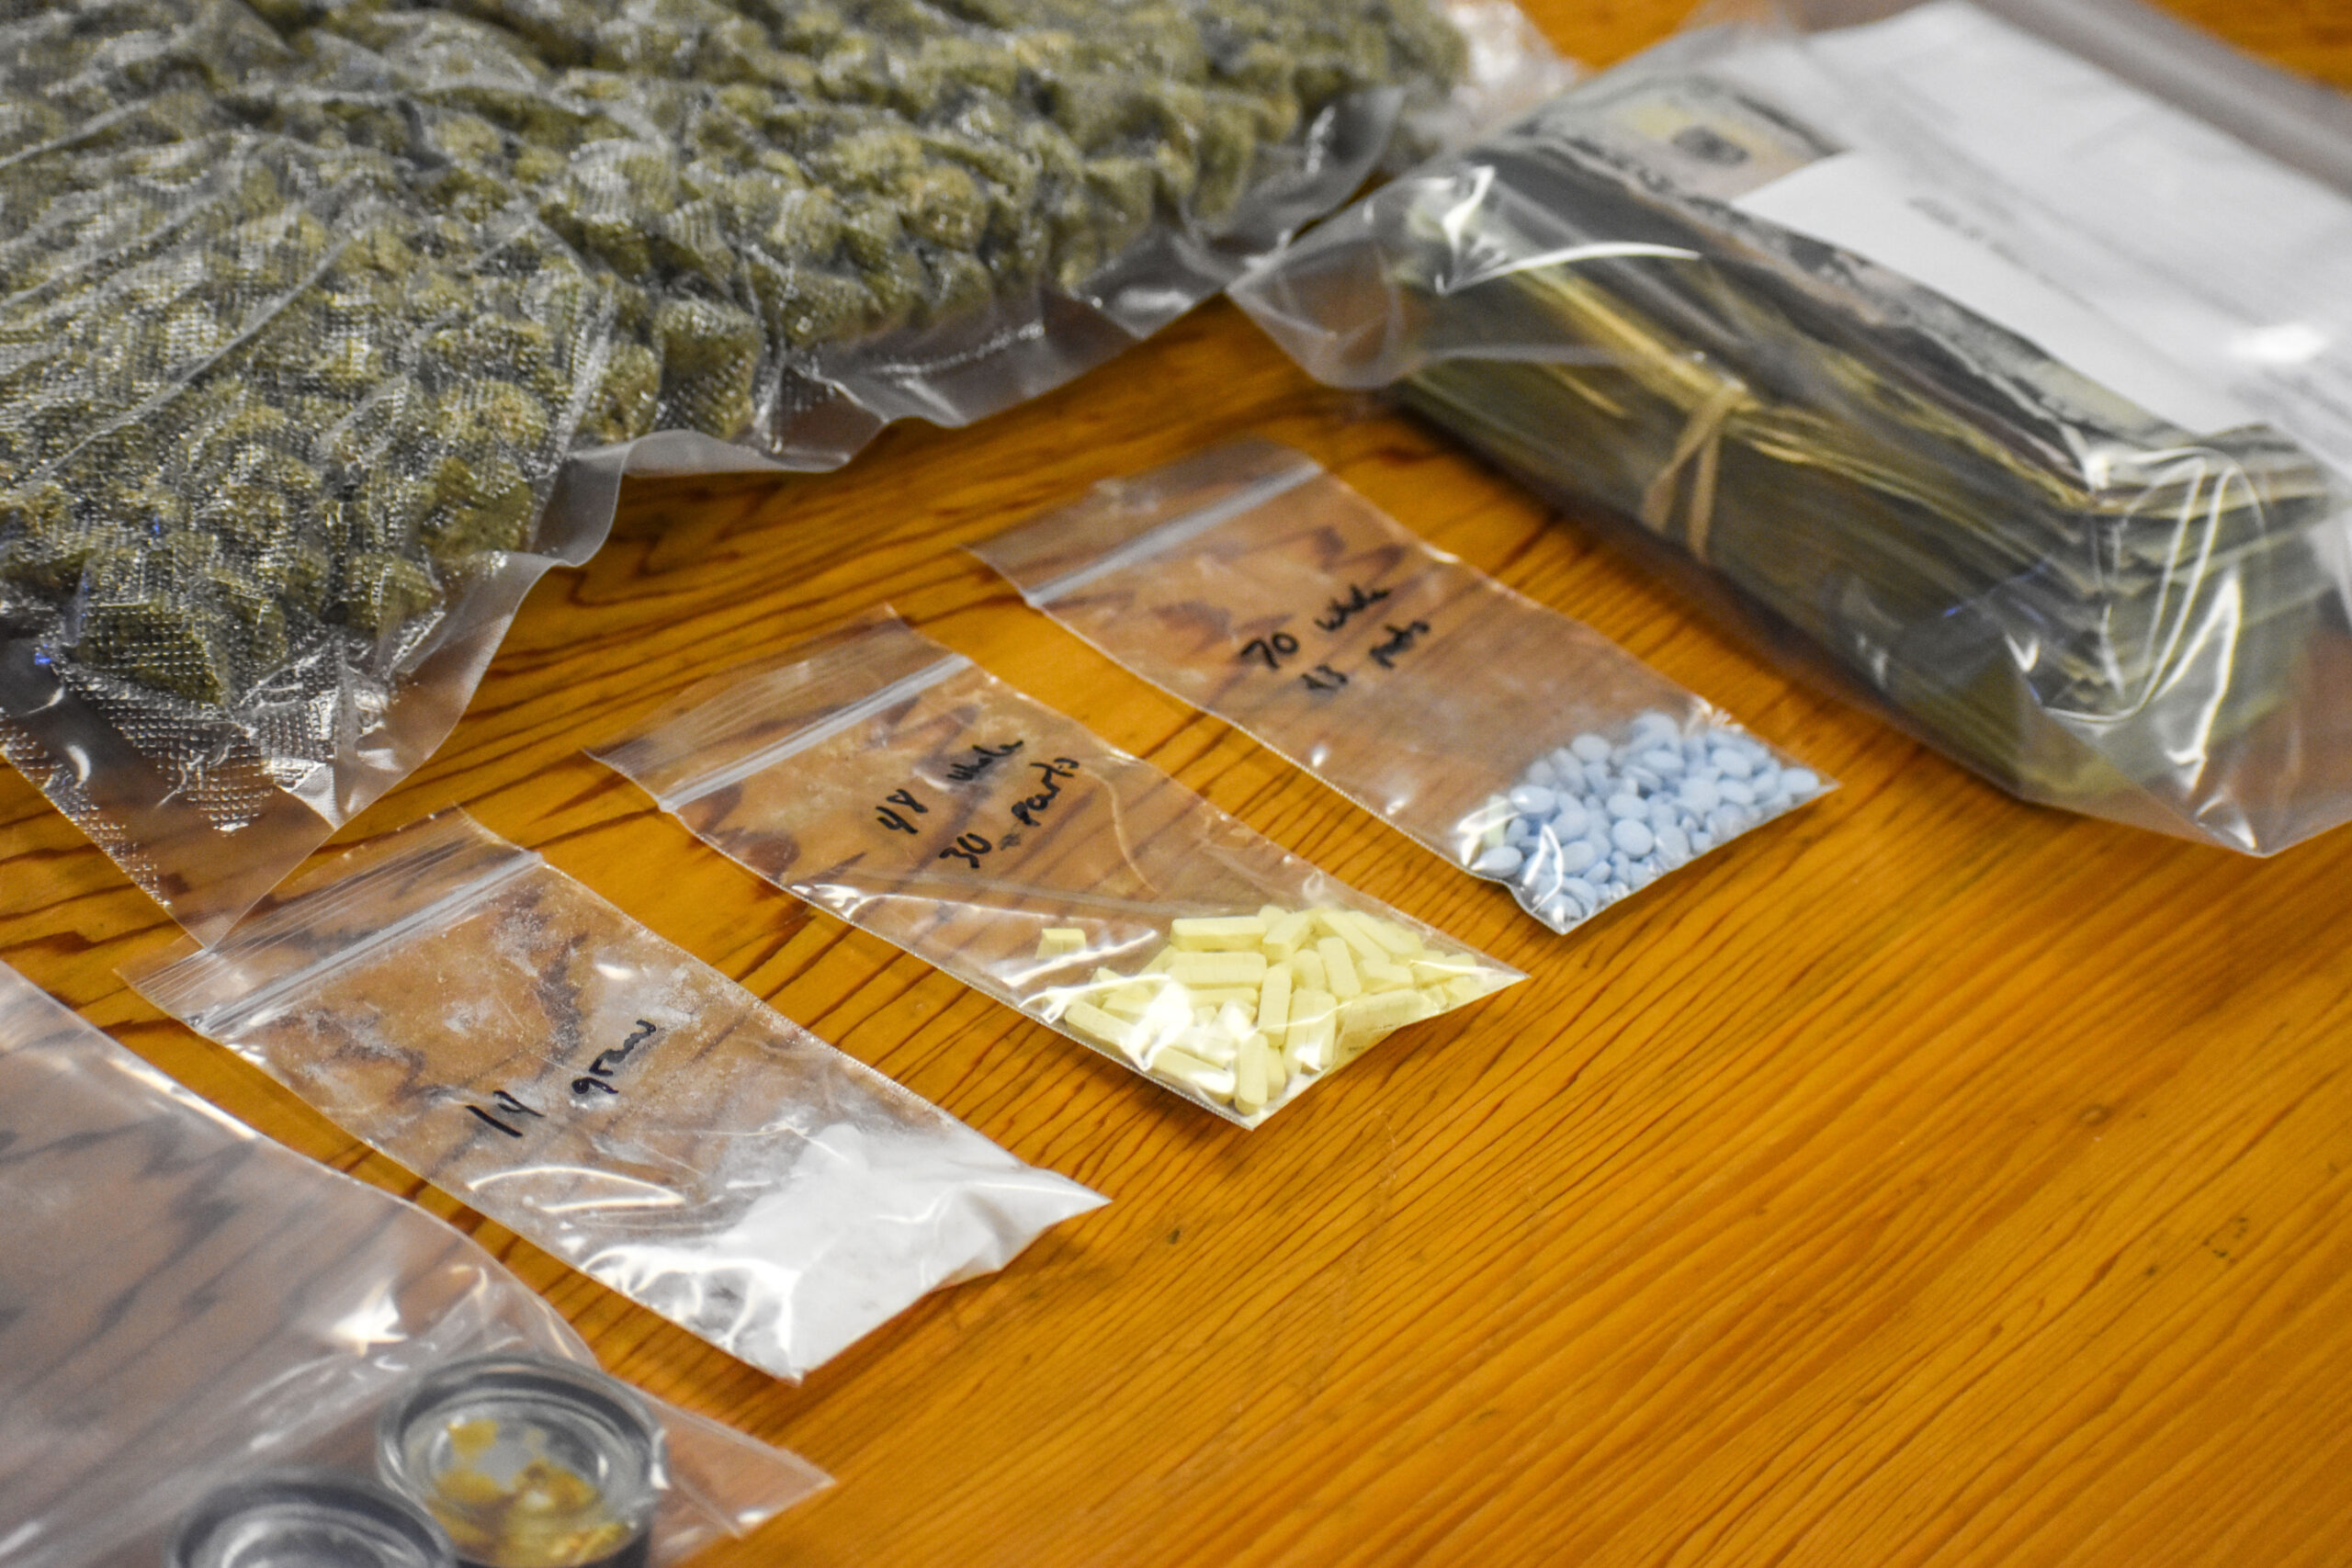 STOP SIGN VIOLATION LEADS TO DISCOVERY OF COCAINE, PILLS AND CASH